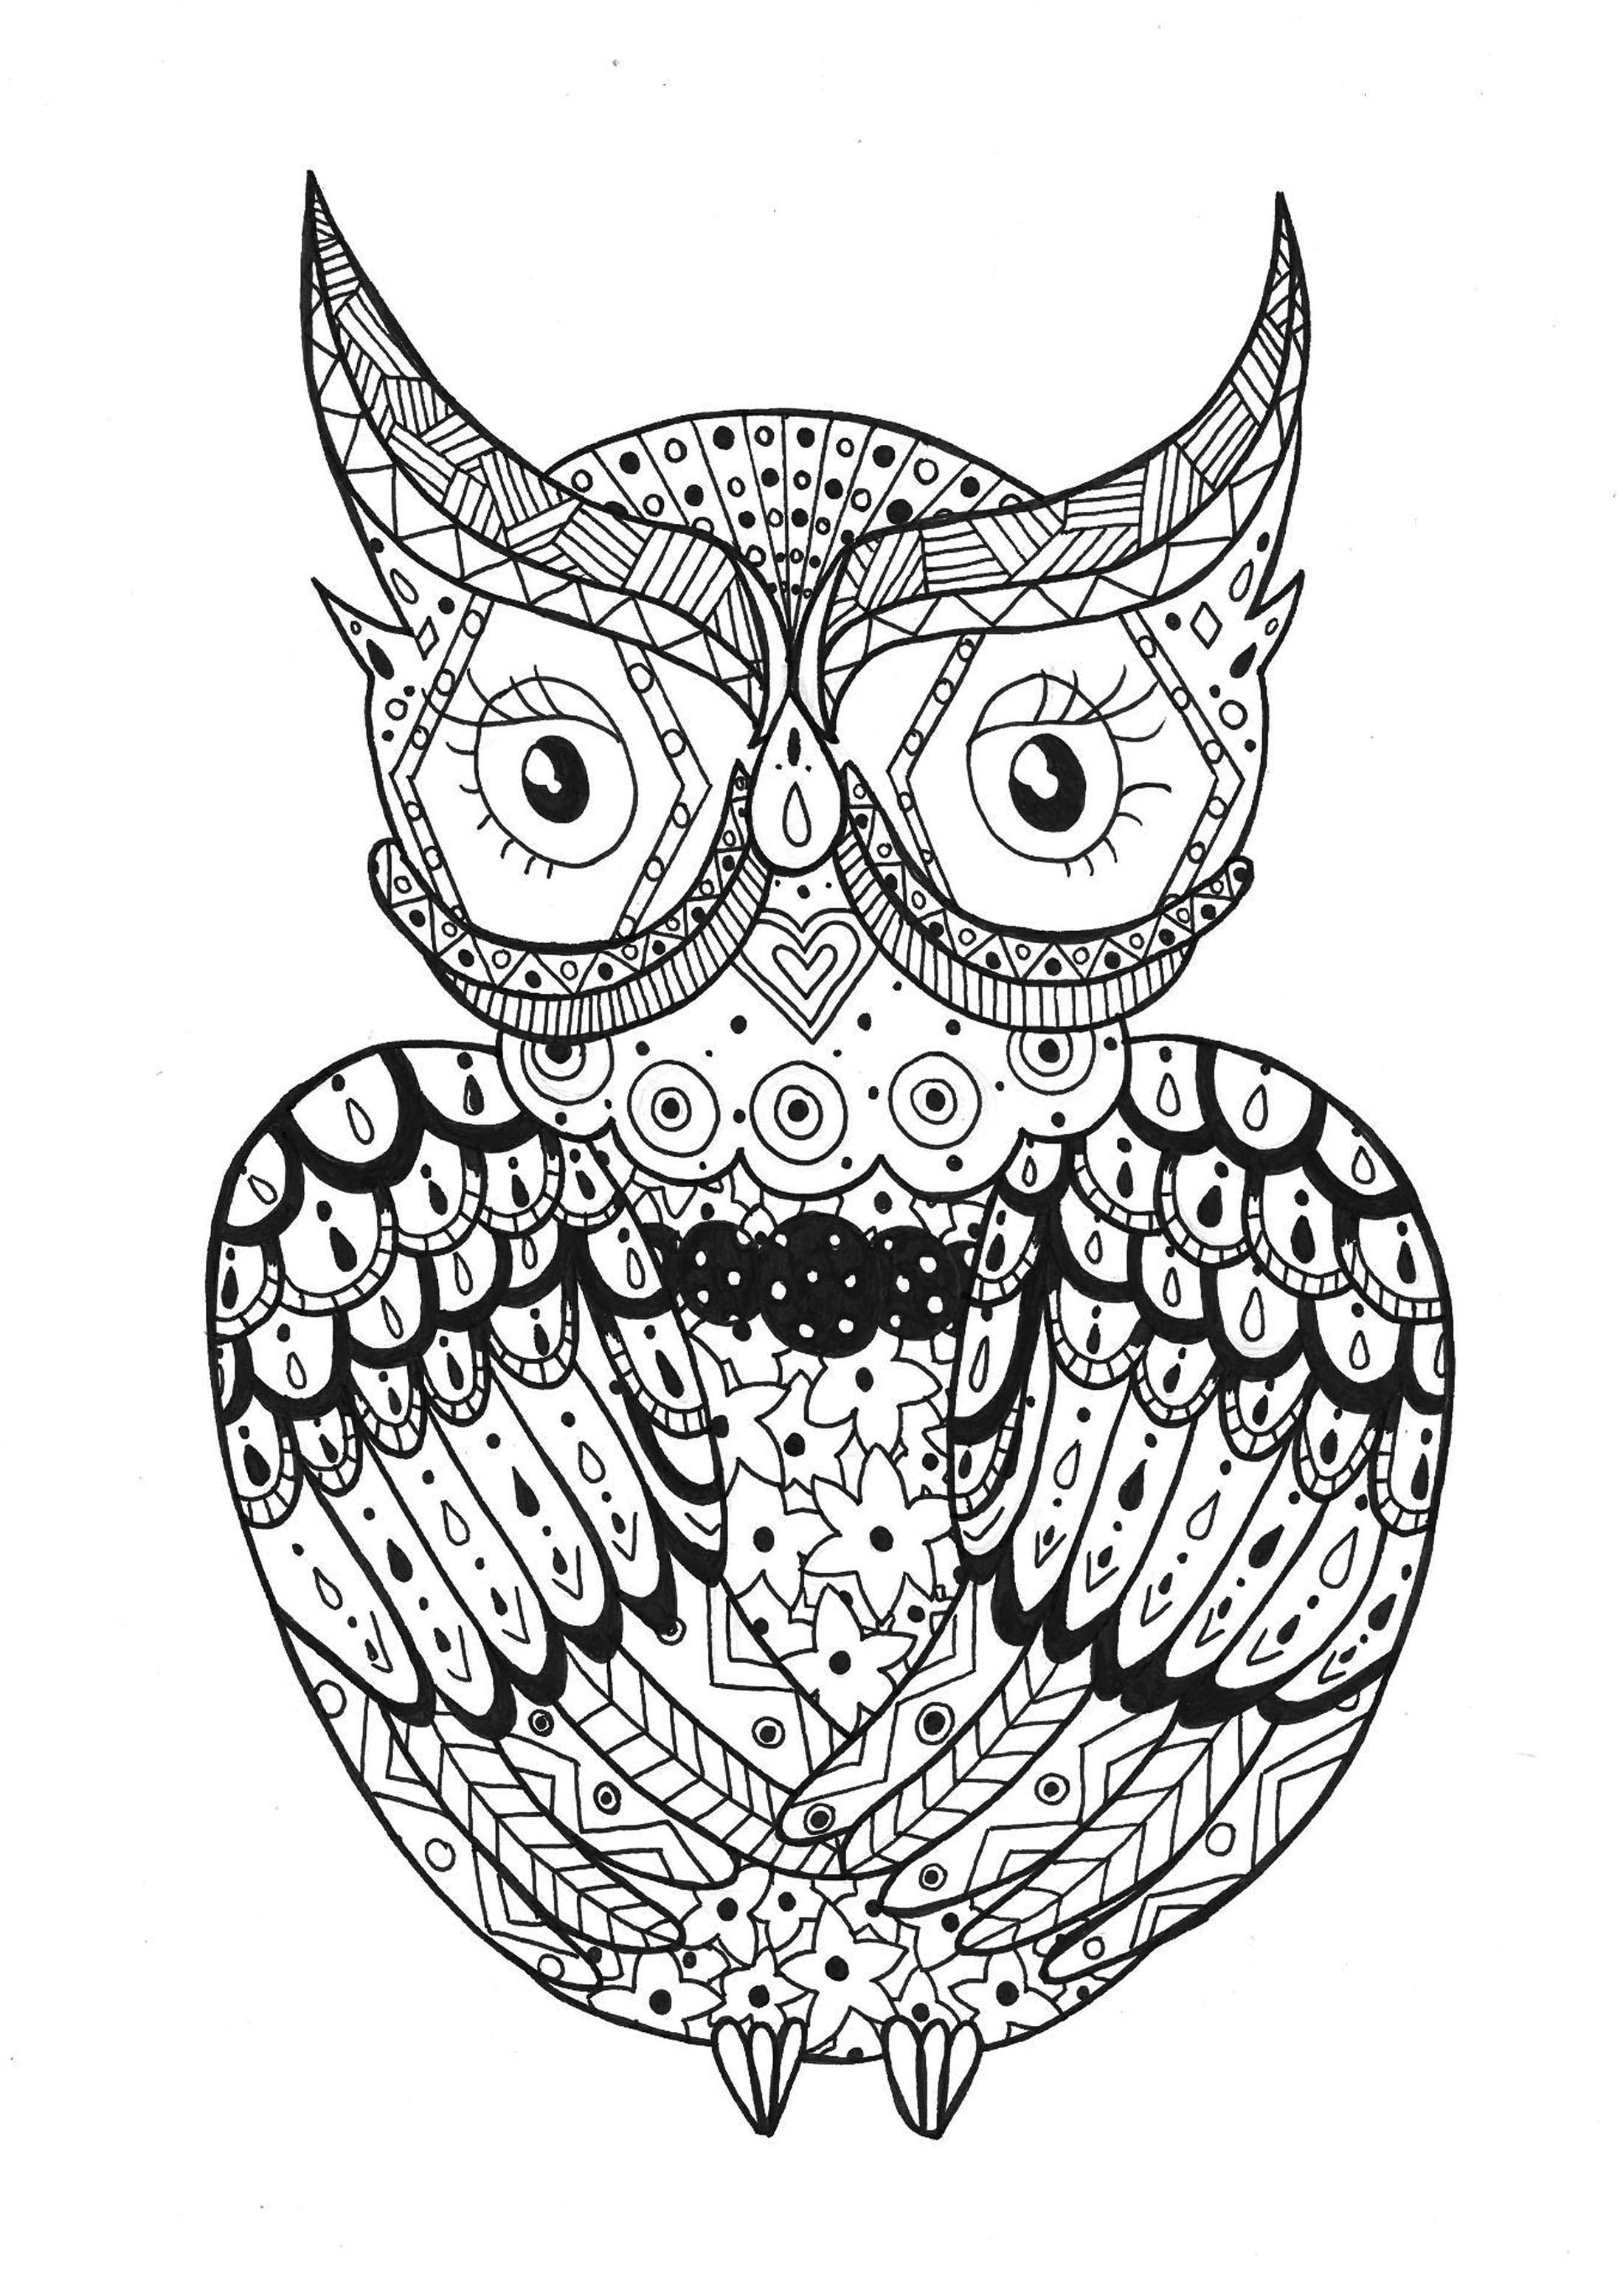 Owls to download - Owls Kids Coloring Pages